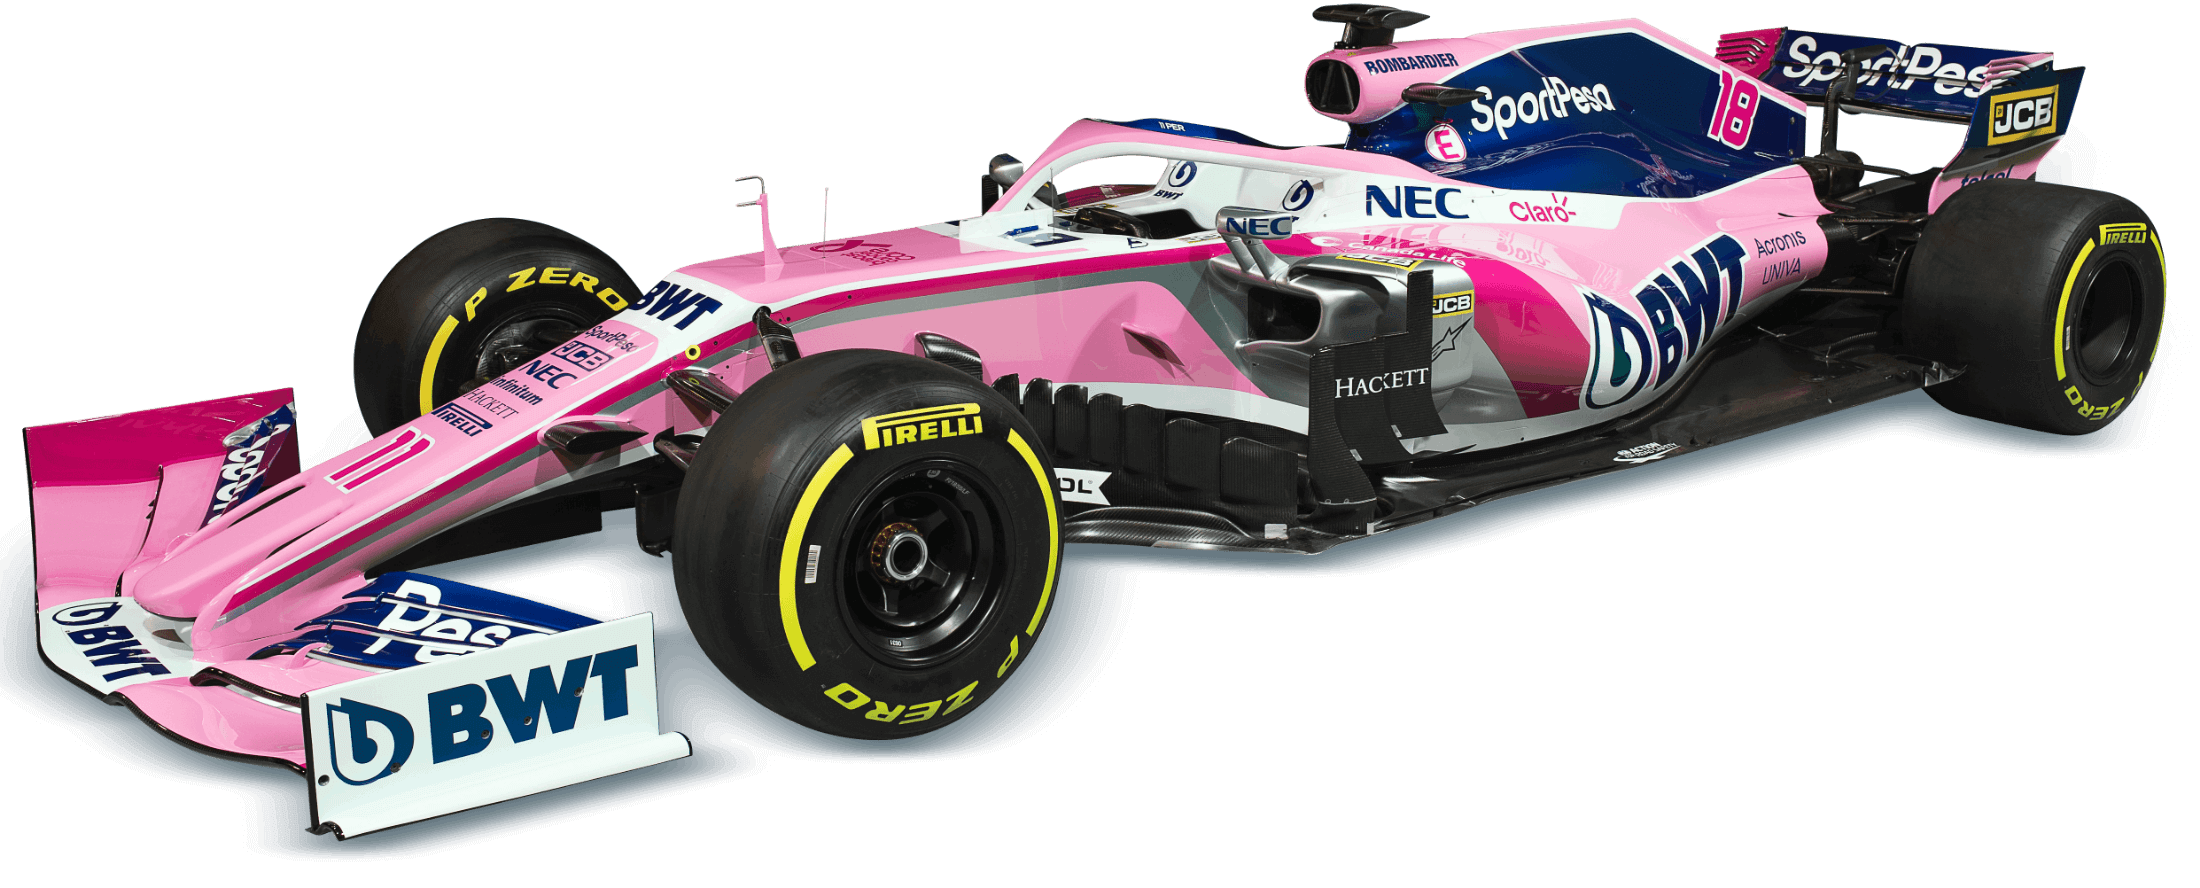 Sportpesa Racing Point F1 Team Acronis Partnership